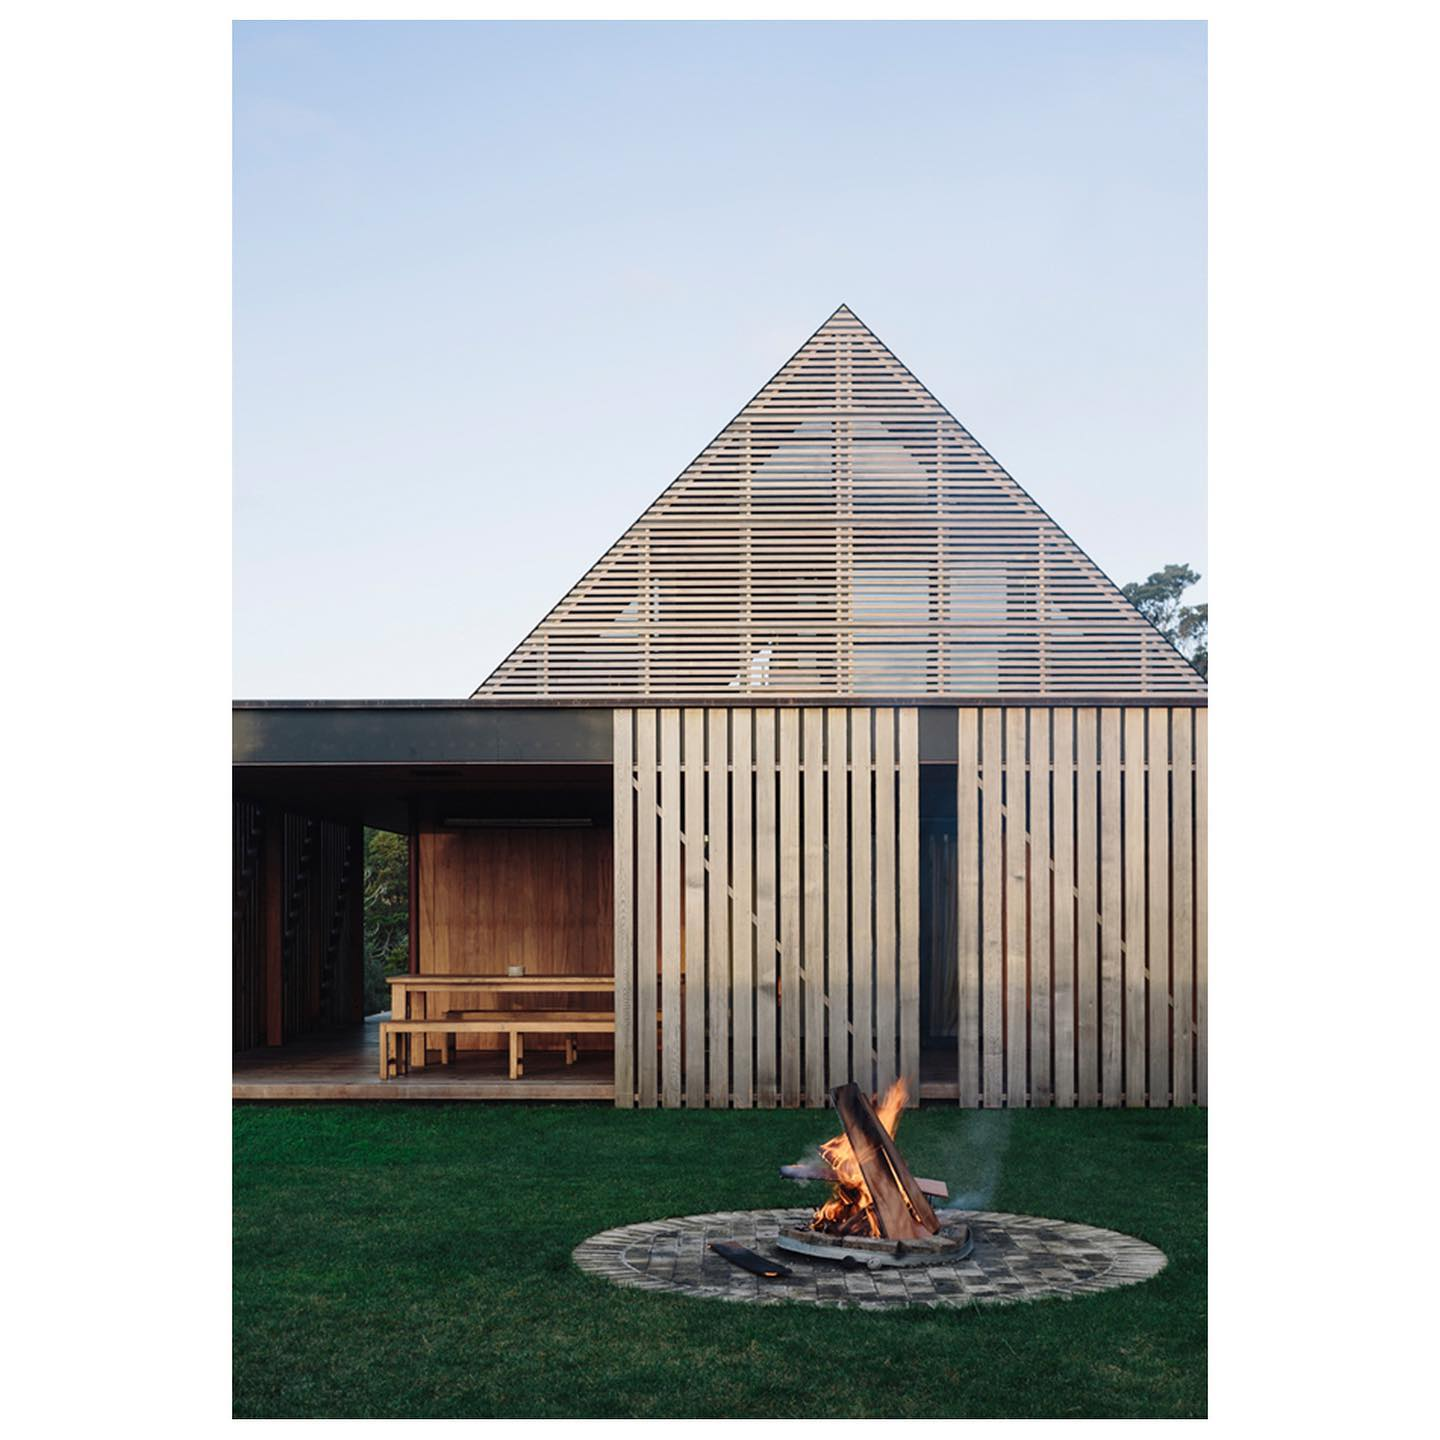 Nestled at the foot of Auckland's Waitakere Ranges, this tim